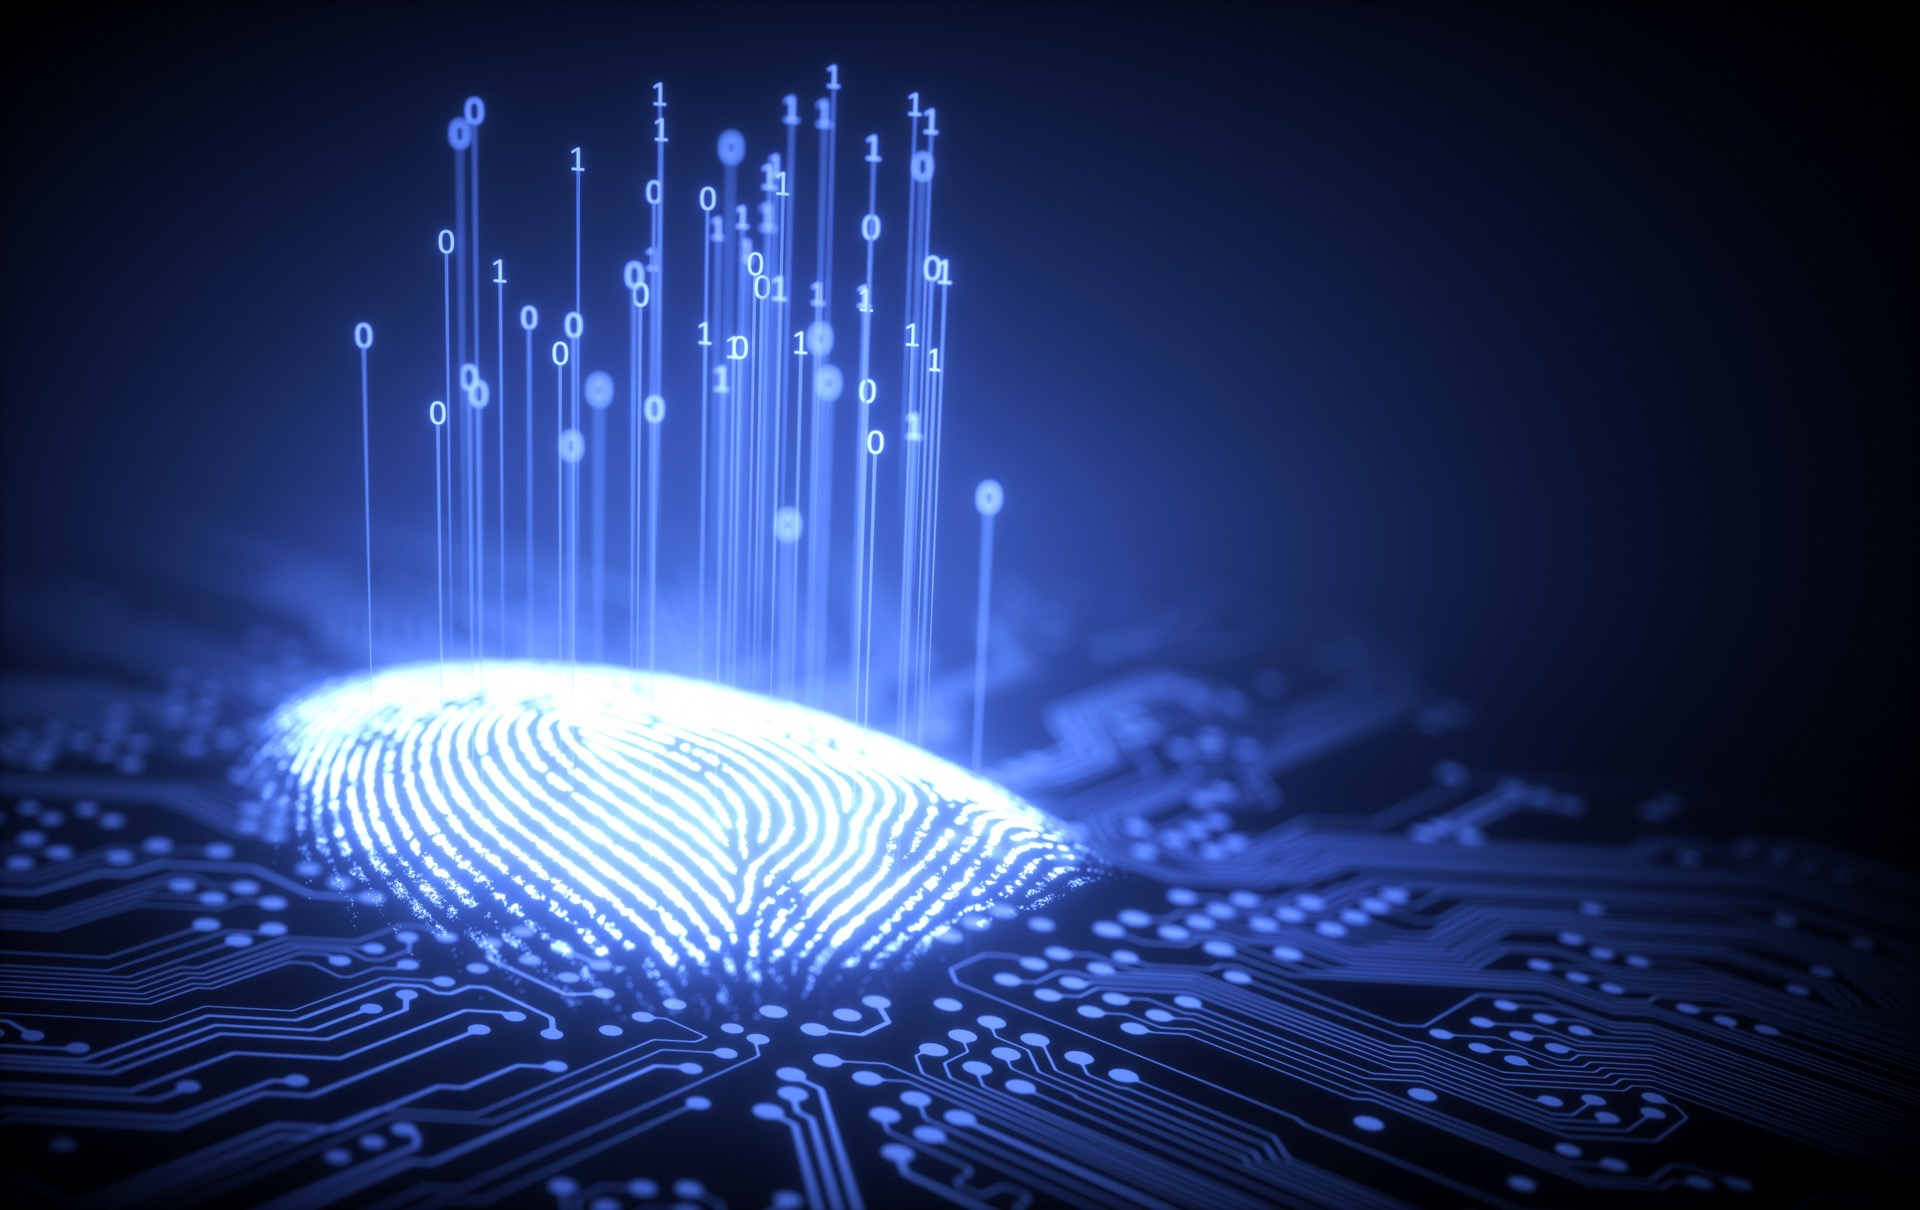 Can touch this: Samsung in fingerprint Mastercard masterplan